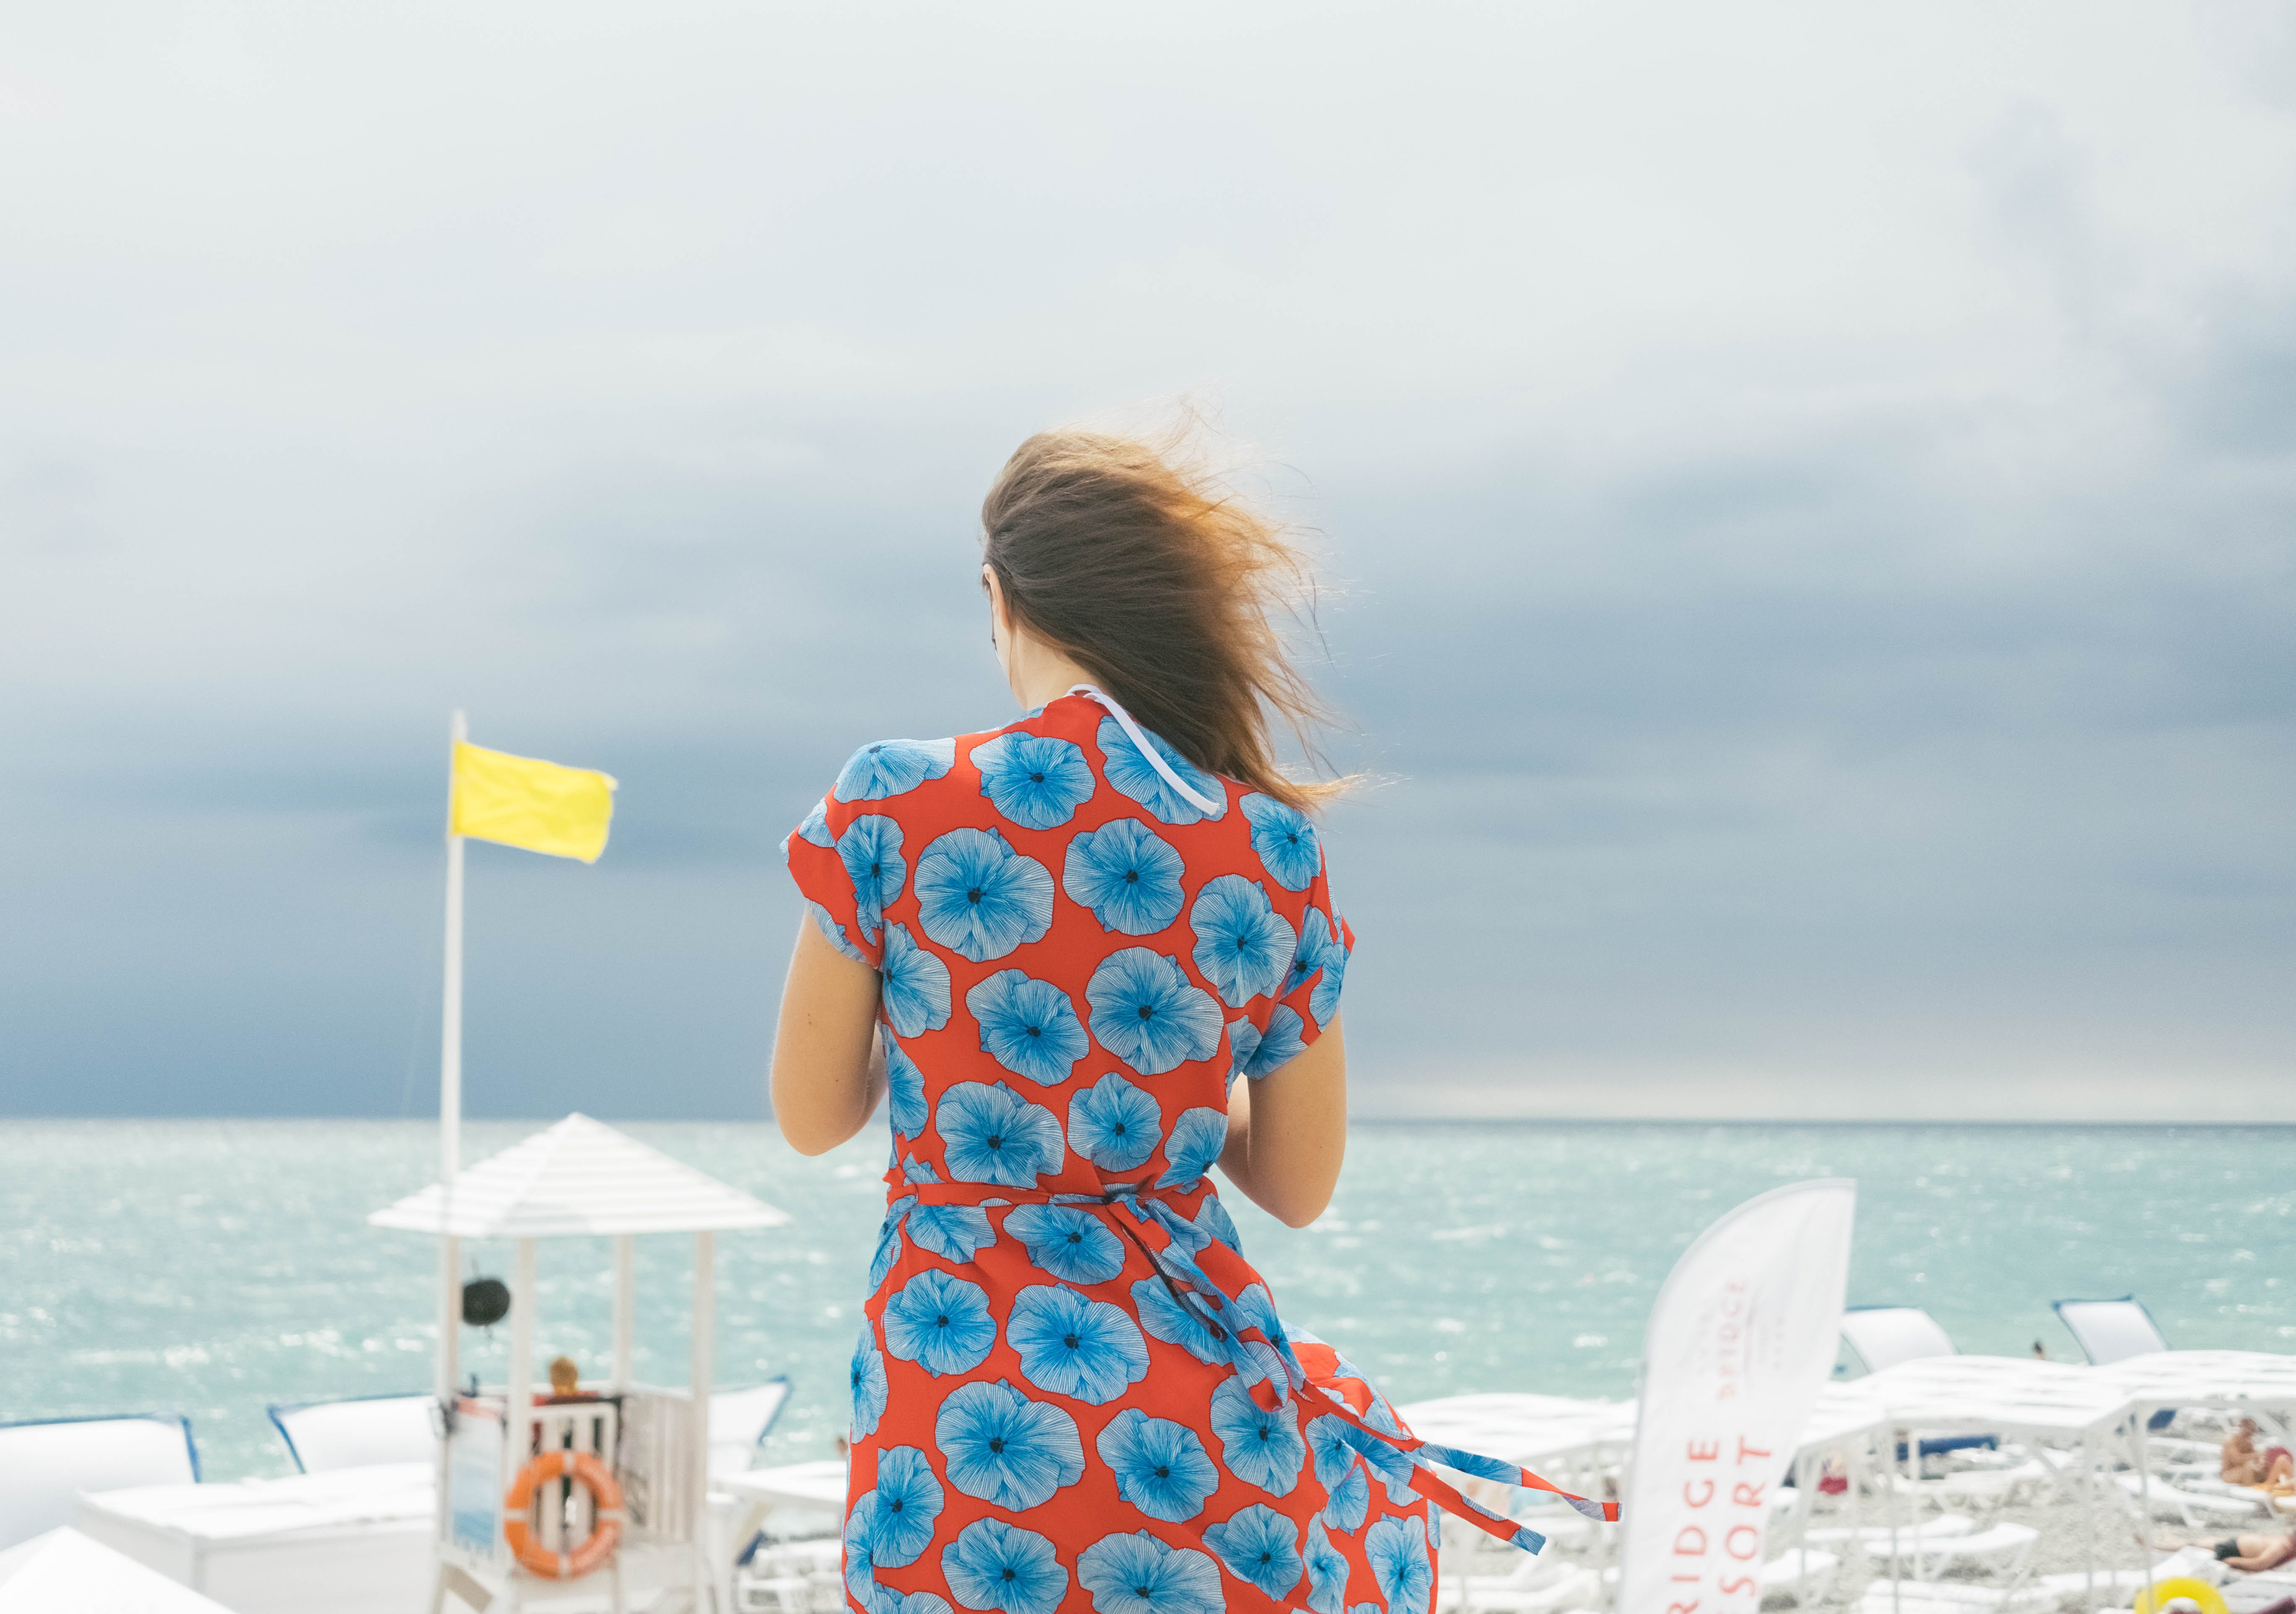 Woman in Red and Blue Floral Dress Standing Near Body of Water